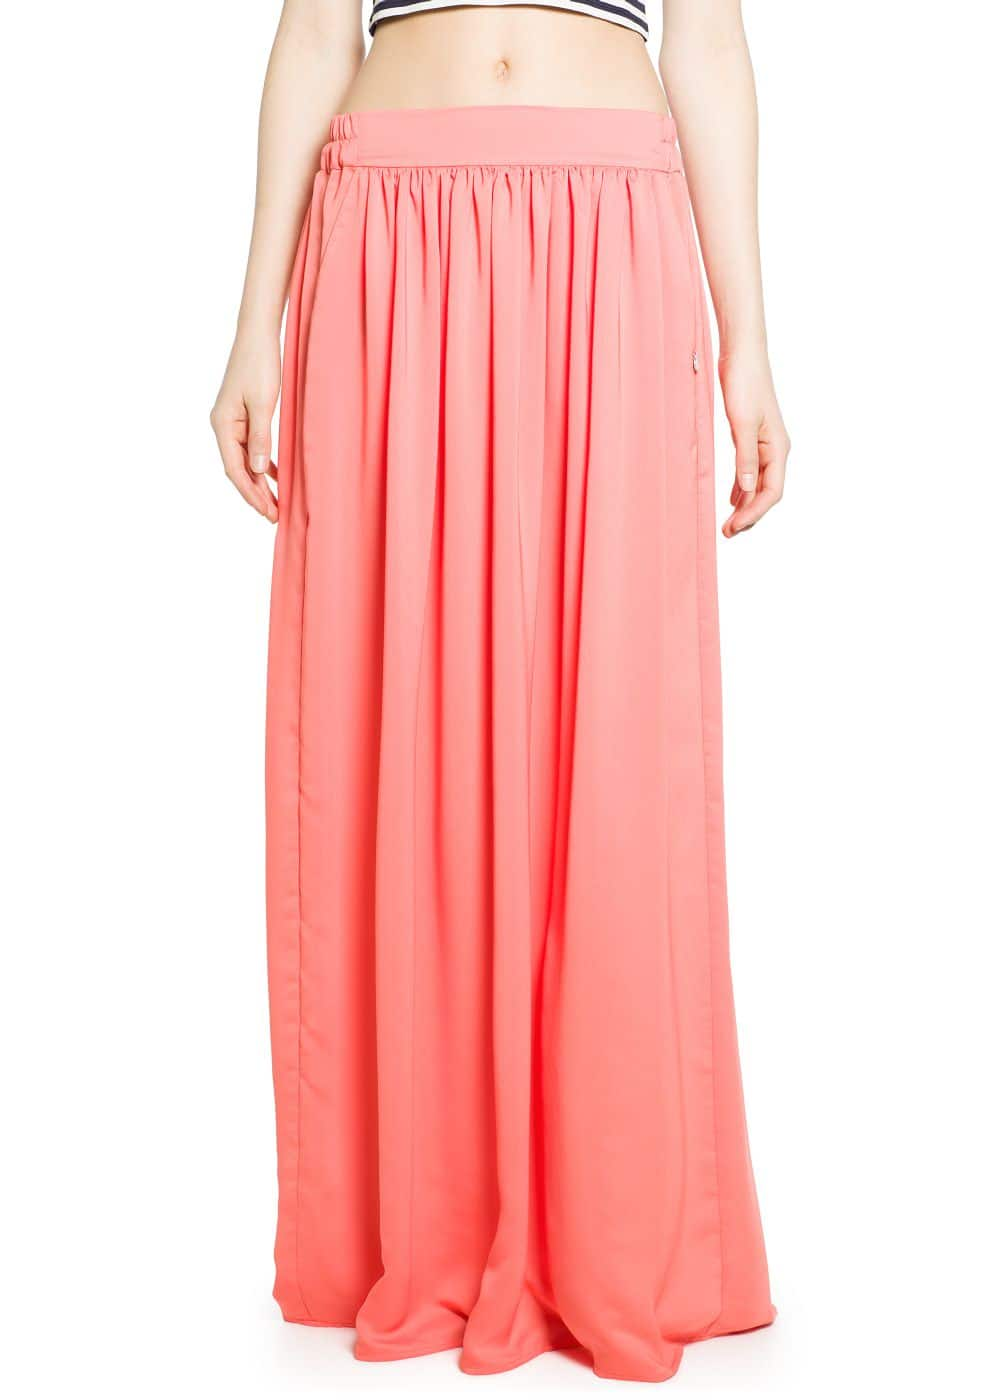 Flowy long skirt